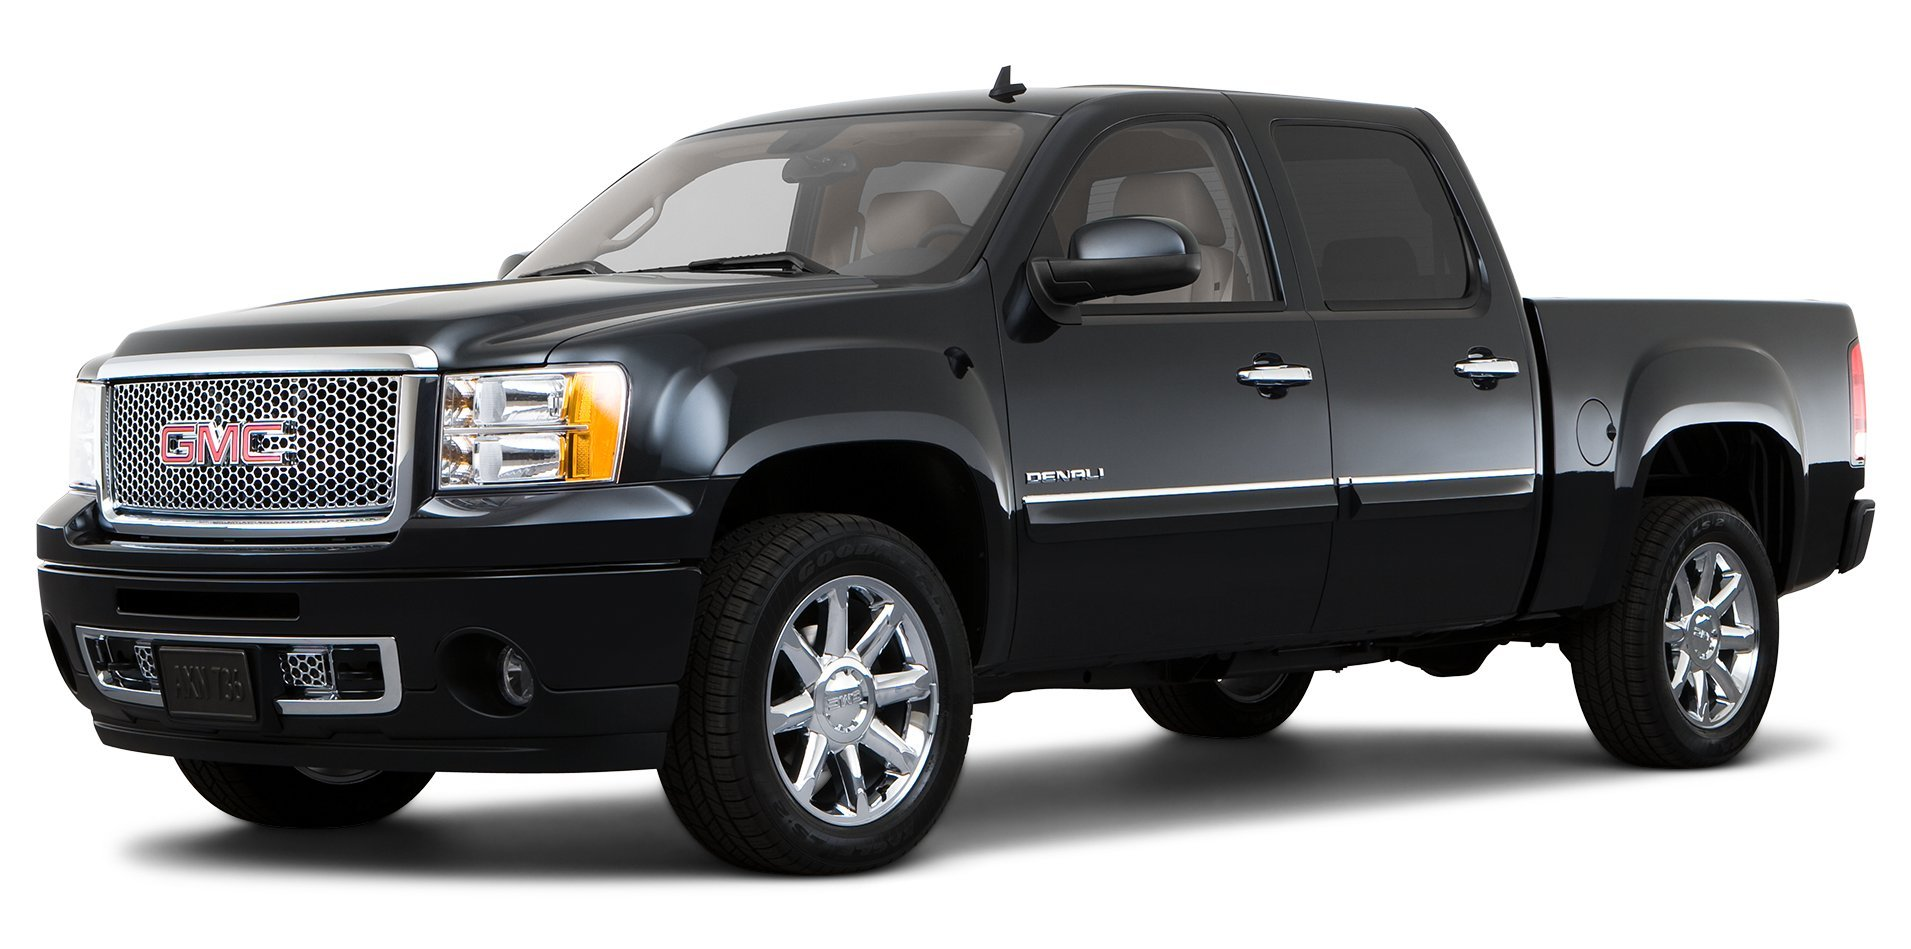 2010 gmc sierra 1500 reviews images and. Black Bedroom Furniture Sets. Home Design Ideas